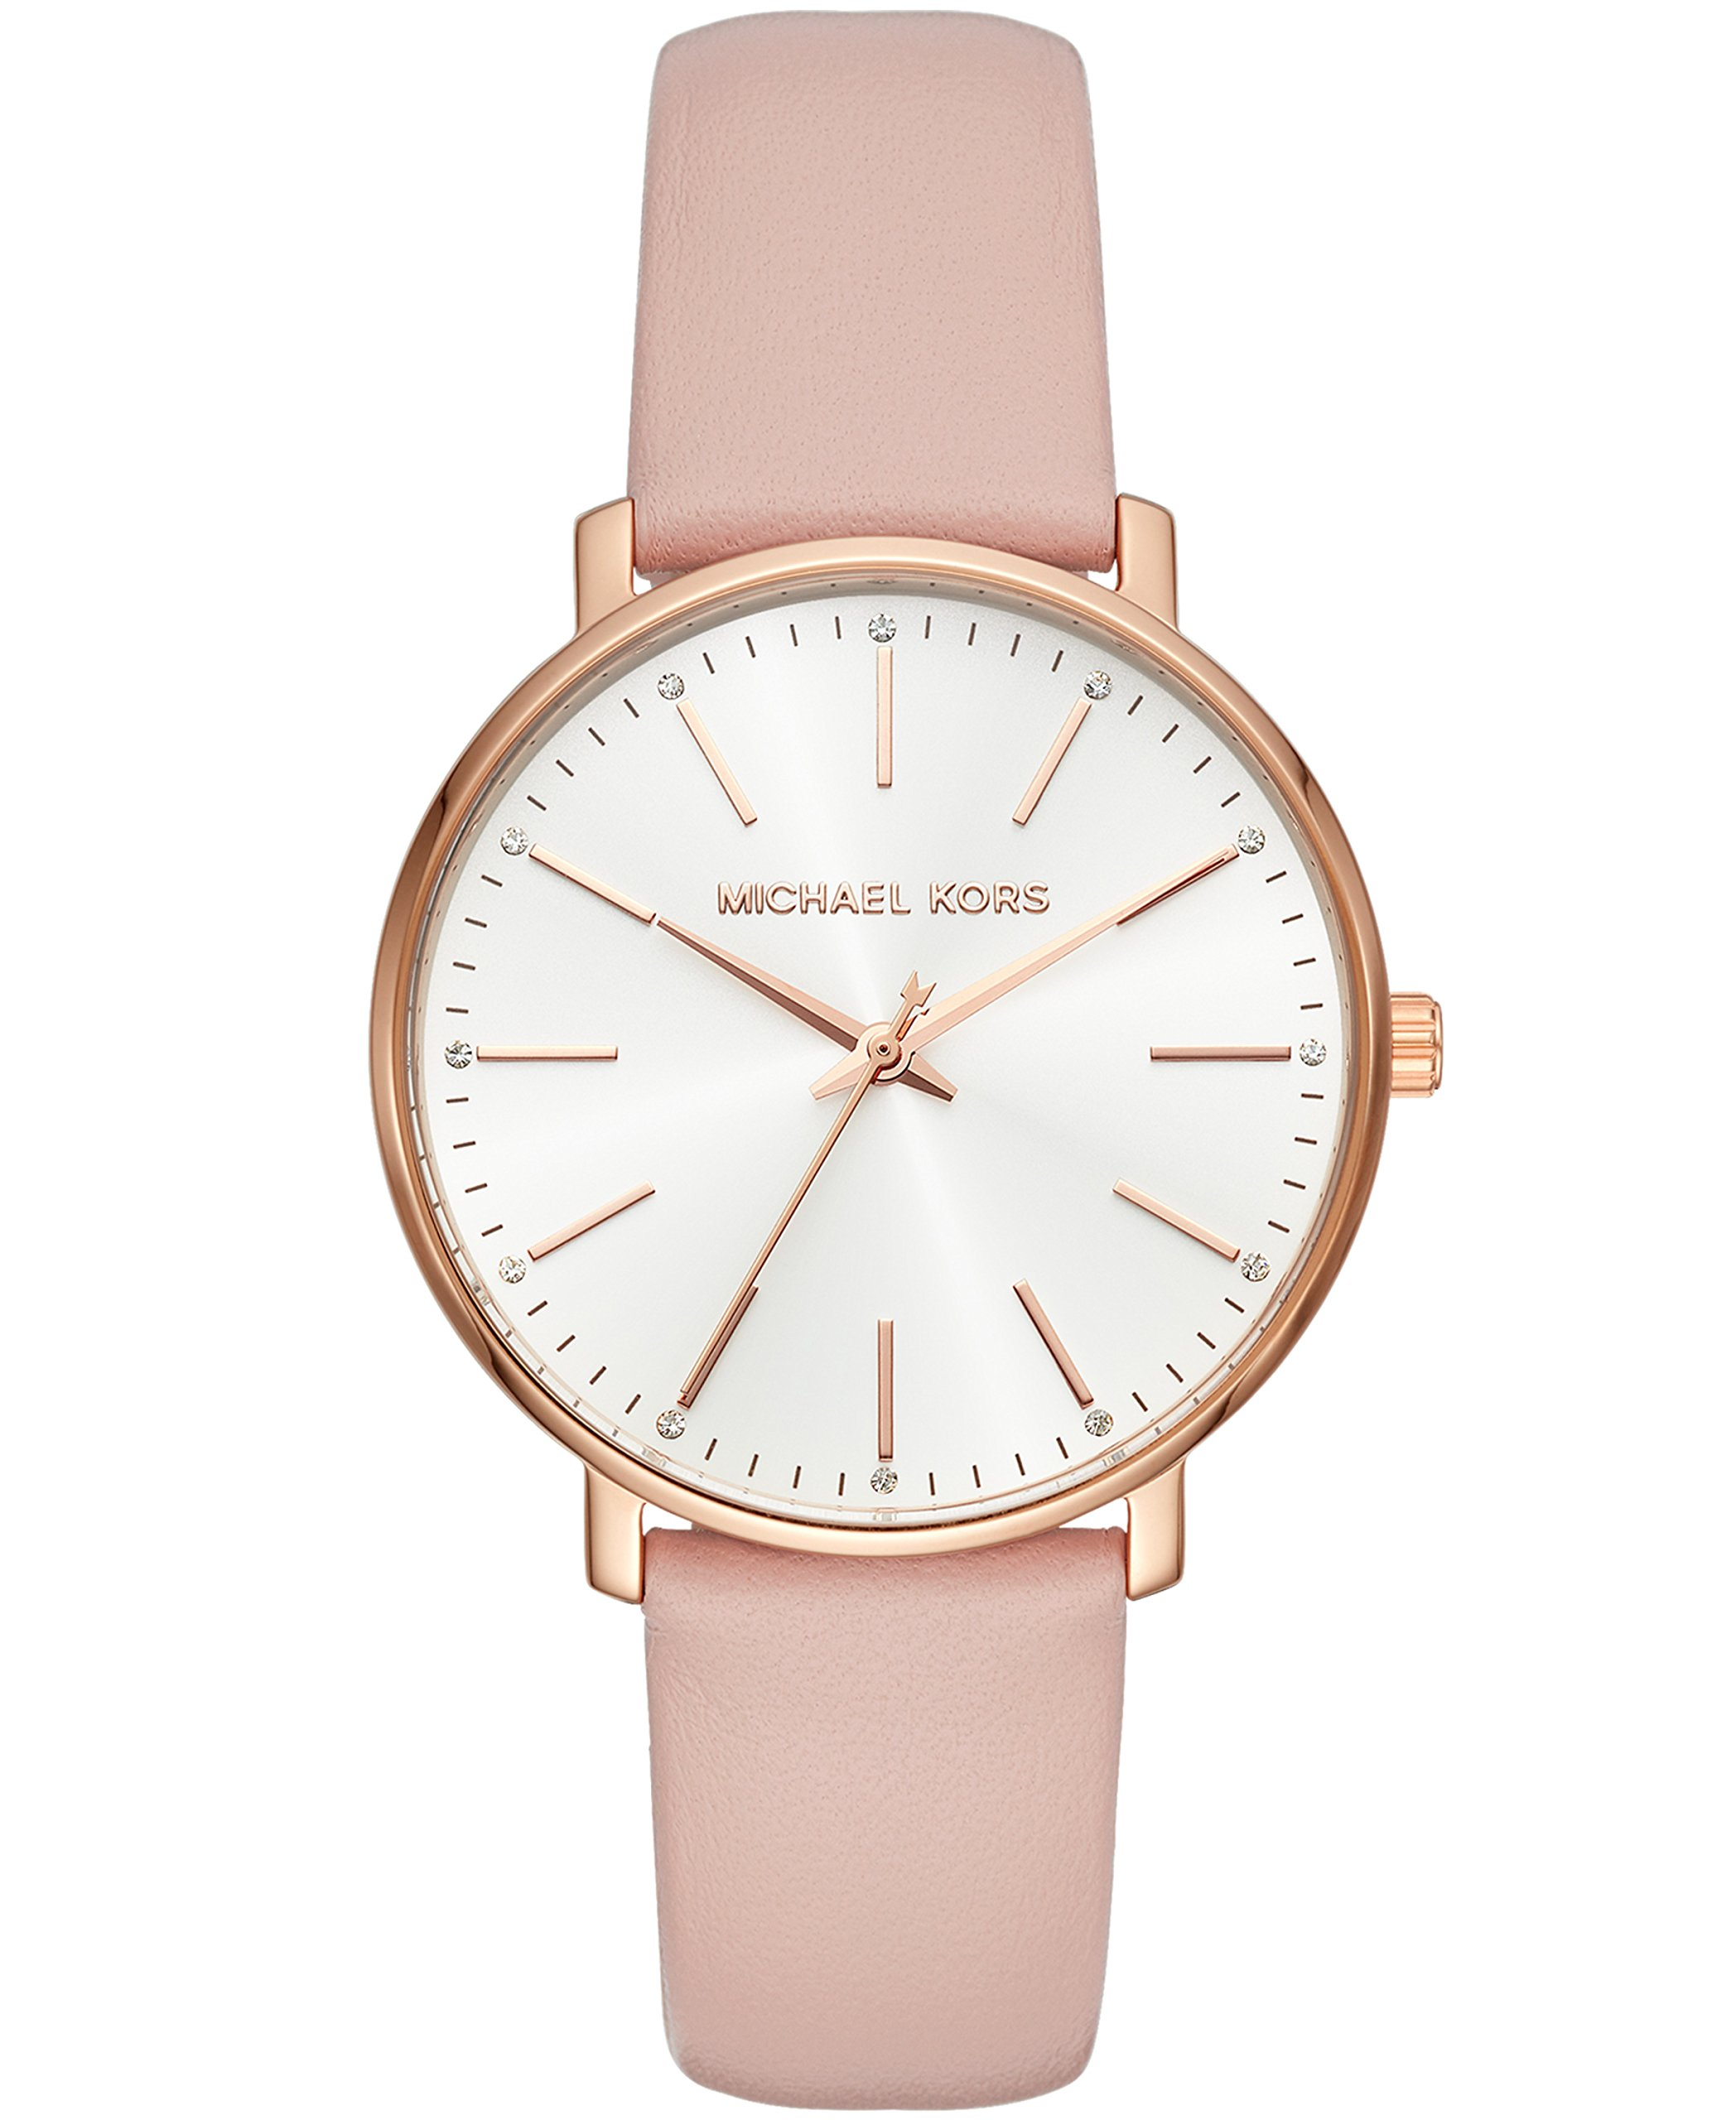 Michael Kors Women's Stainless Steel Quartz Watch with Leather Calfskin Strap, Pink, 18 (Model: MK2741